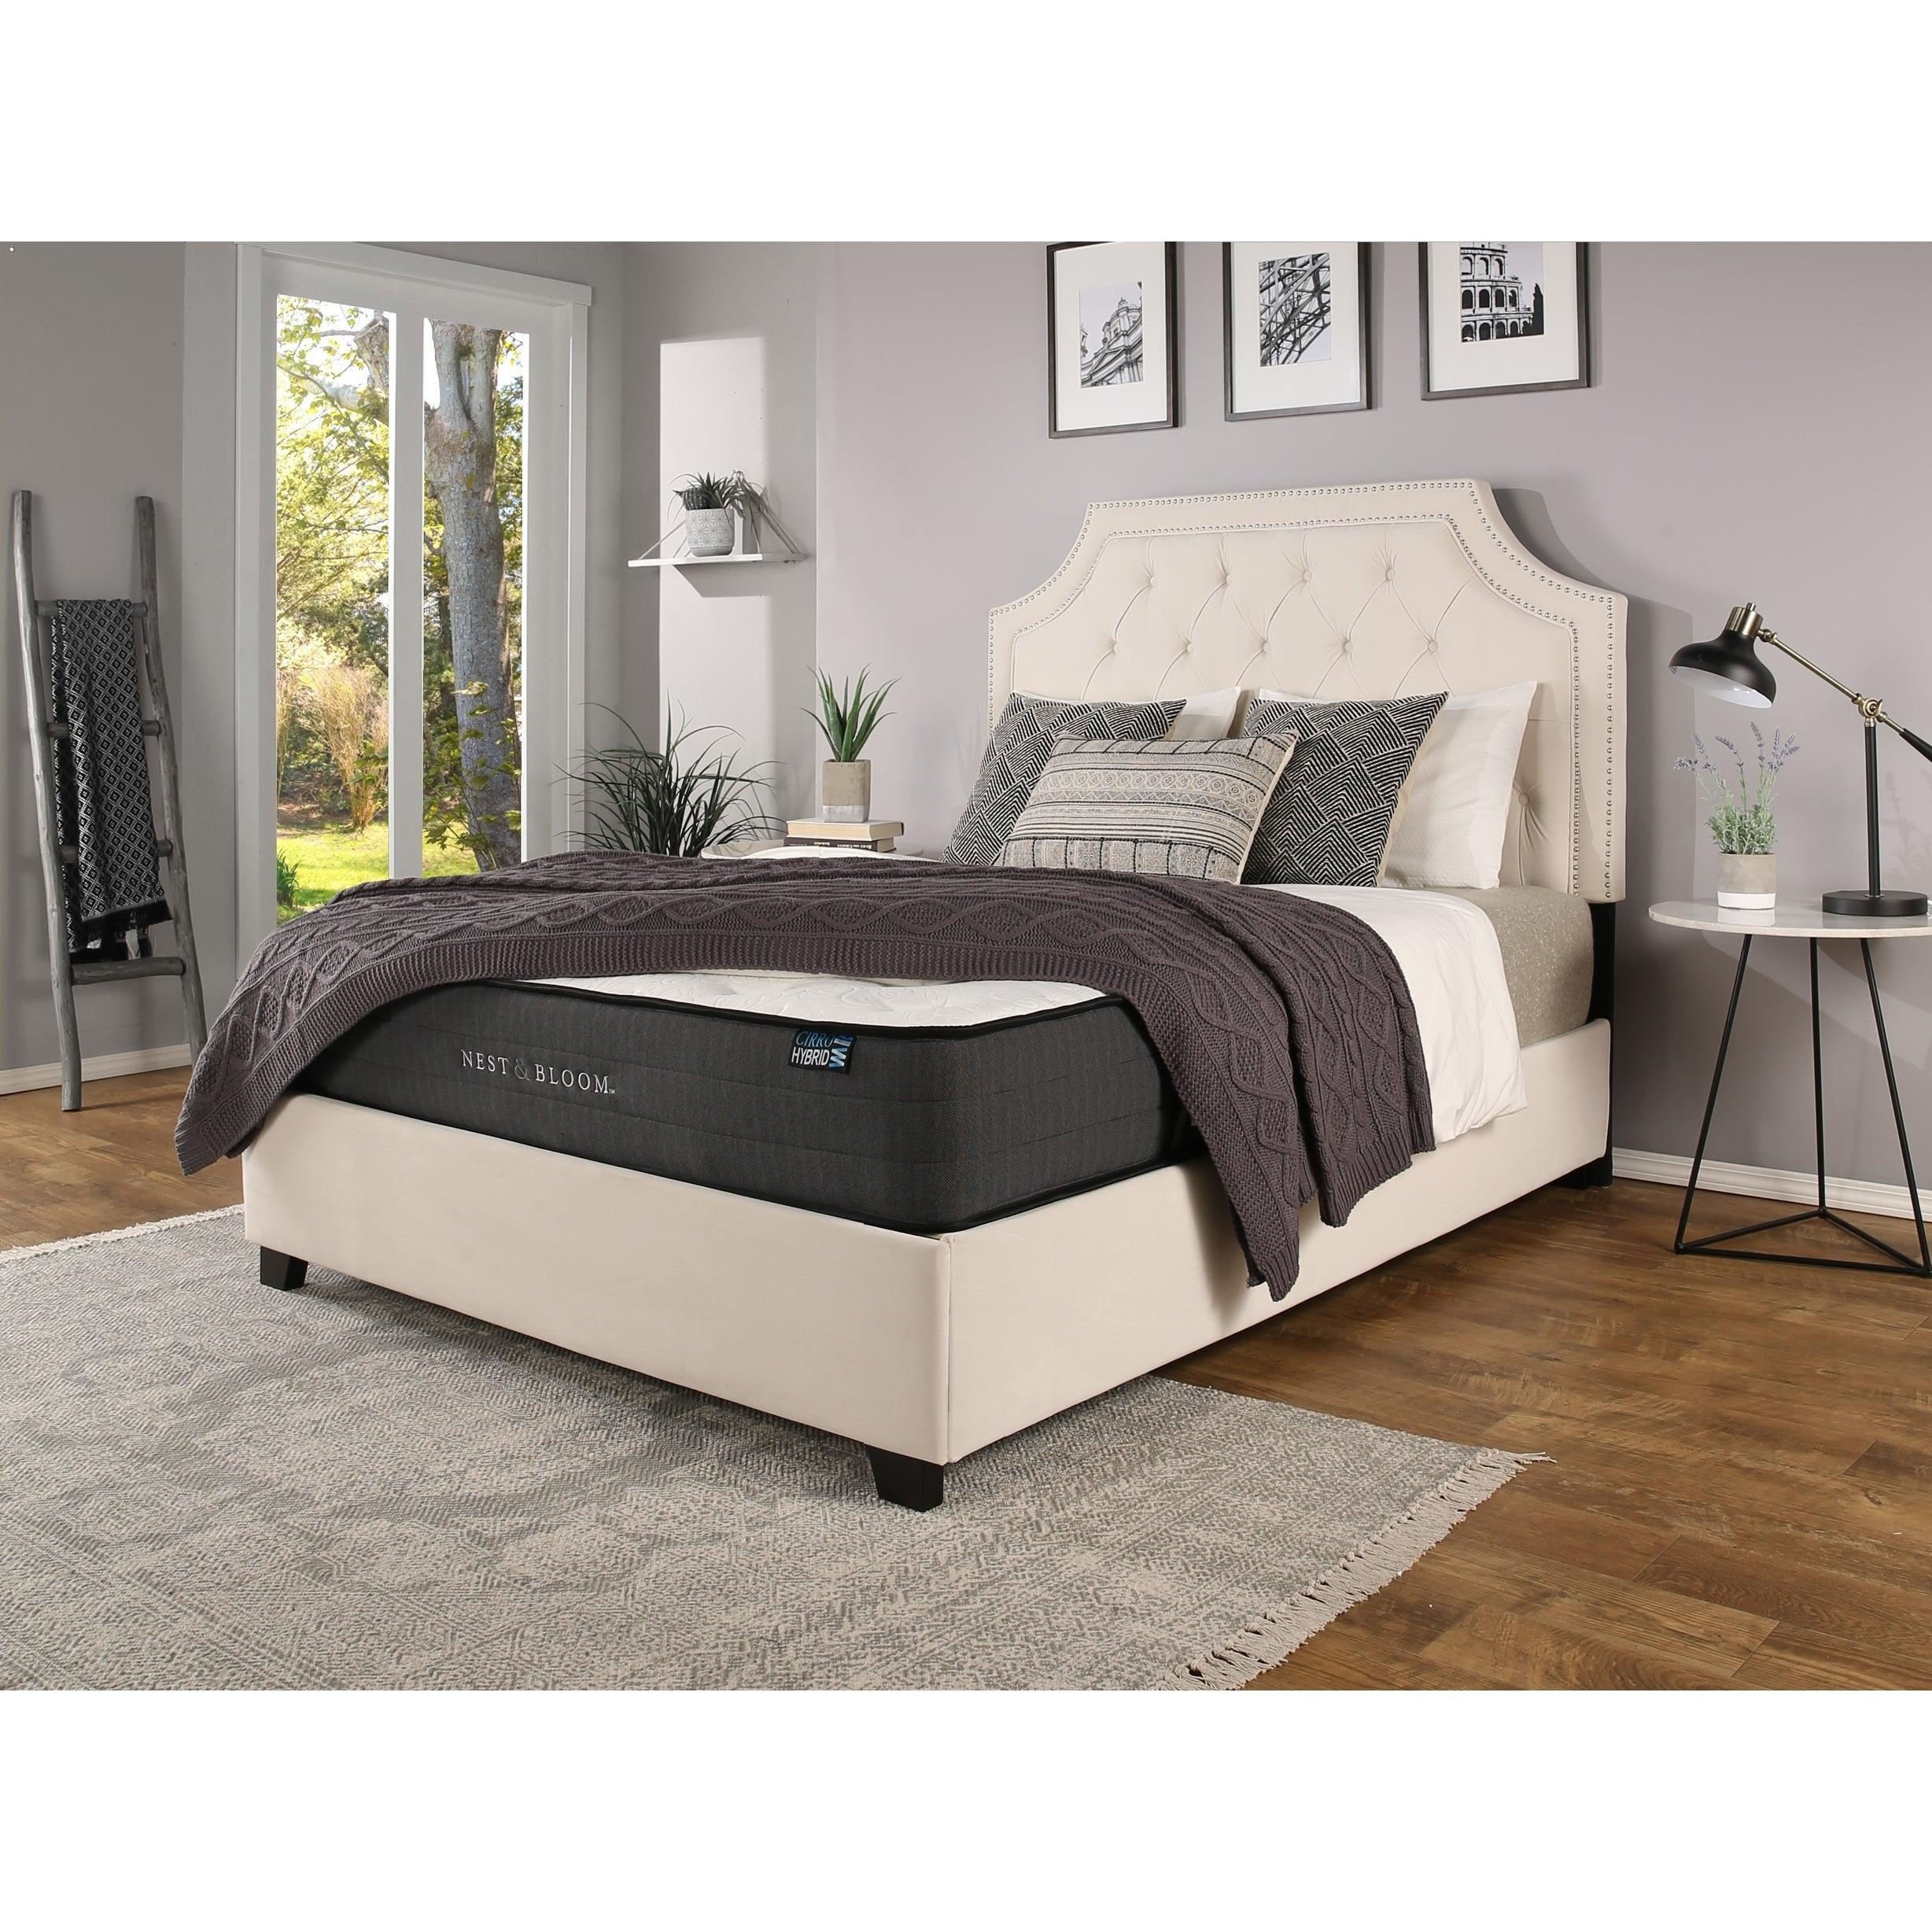 threshold firm products king high foundation misk moonlight item height hybrid care trim t restonic mattress comfort and platinum profile mnlghtfm cc width